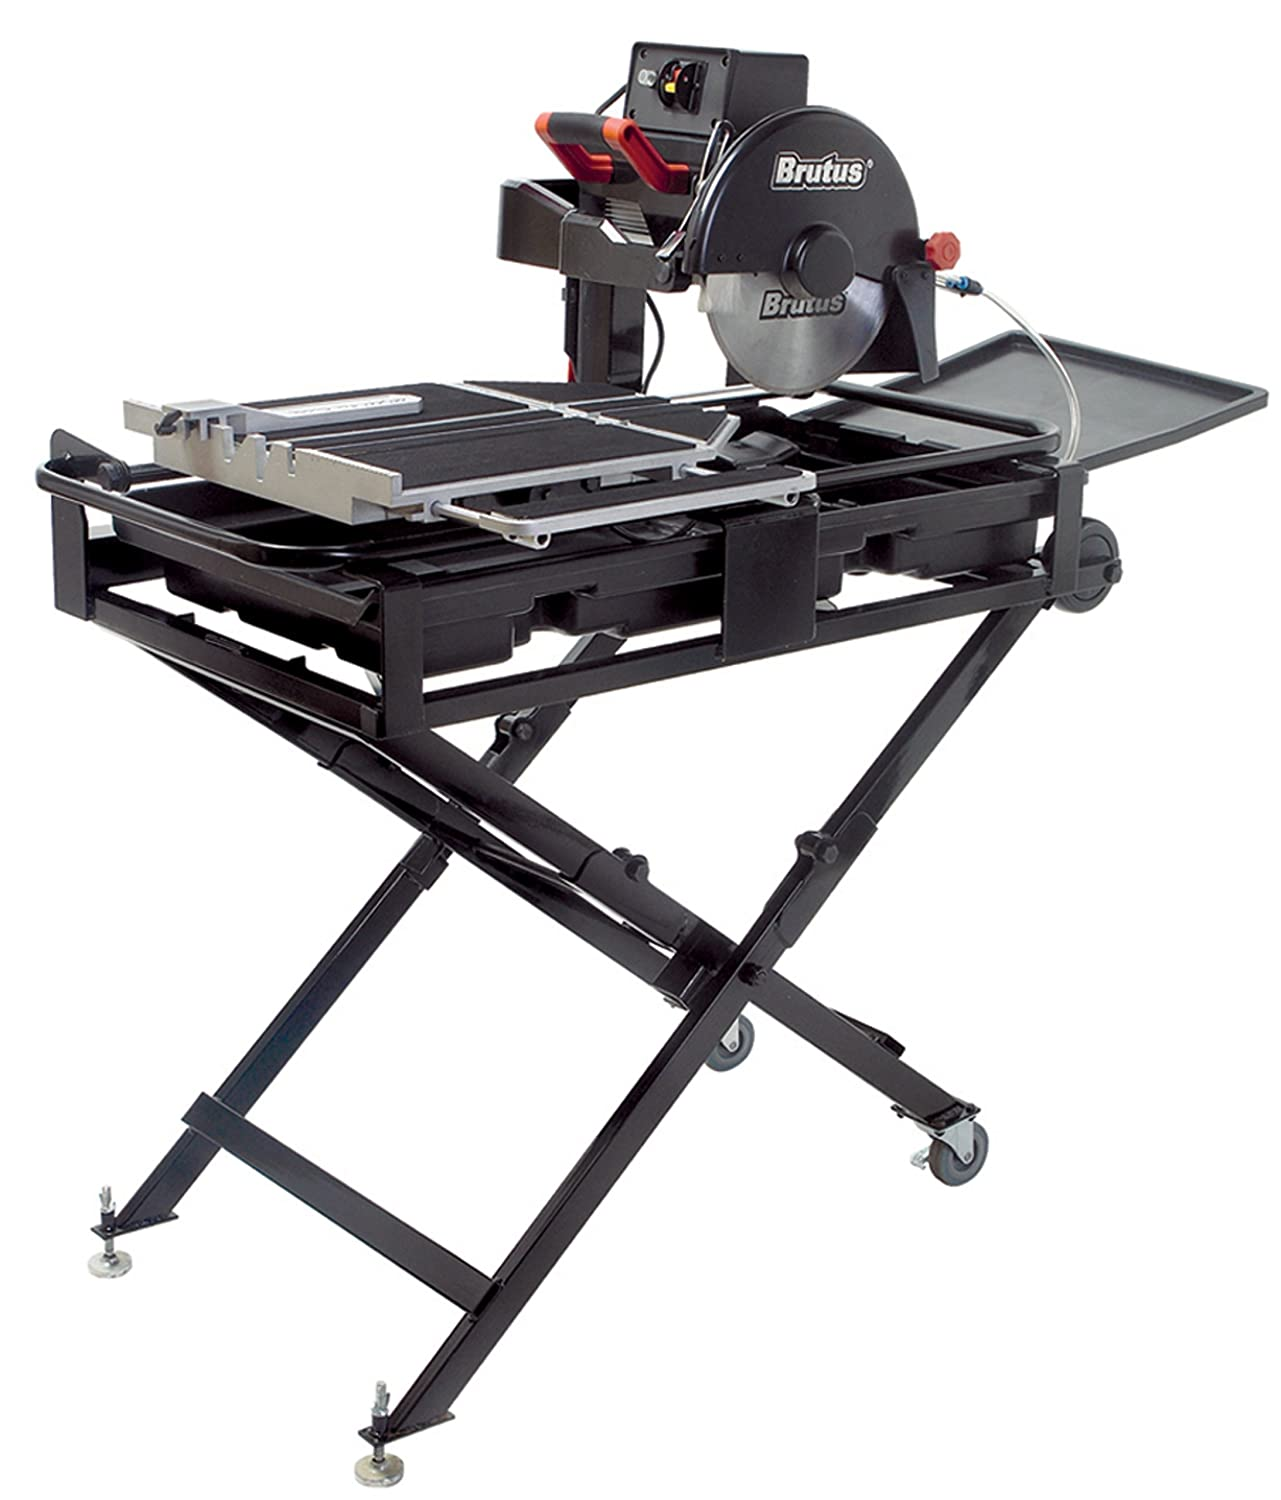 81RqiPSXehL._SL1500_ qep 61024 24 inch brutus professional tile saw with water pump and Powermatic 66 Table Saw at crackthecode.co